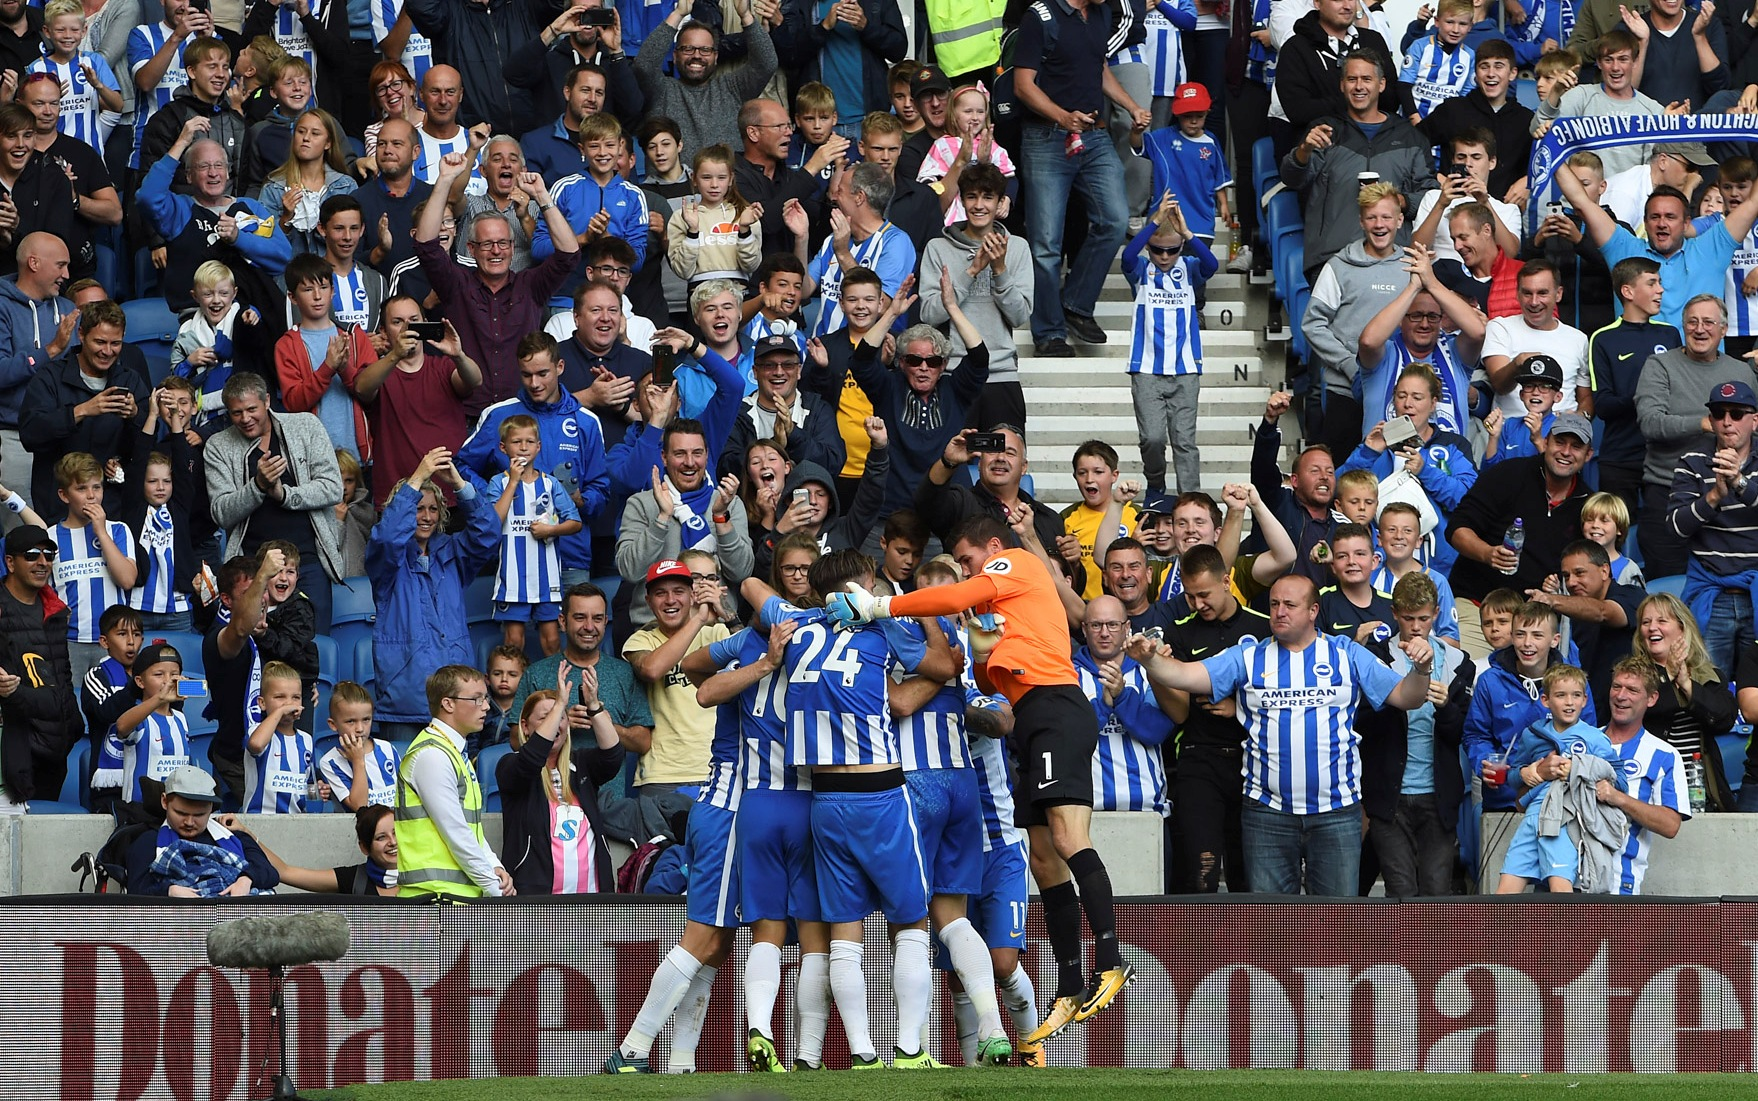 Fans and players celebrate at the Amex today. Picture by Liz Finlayson